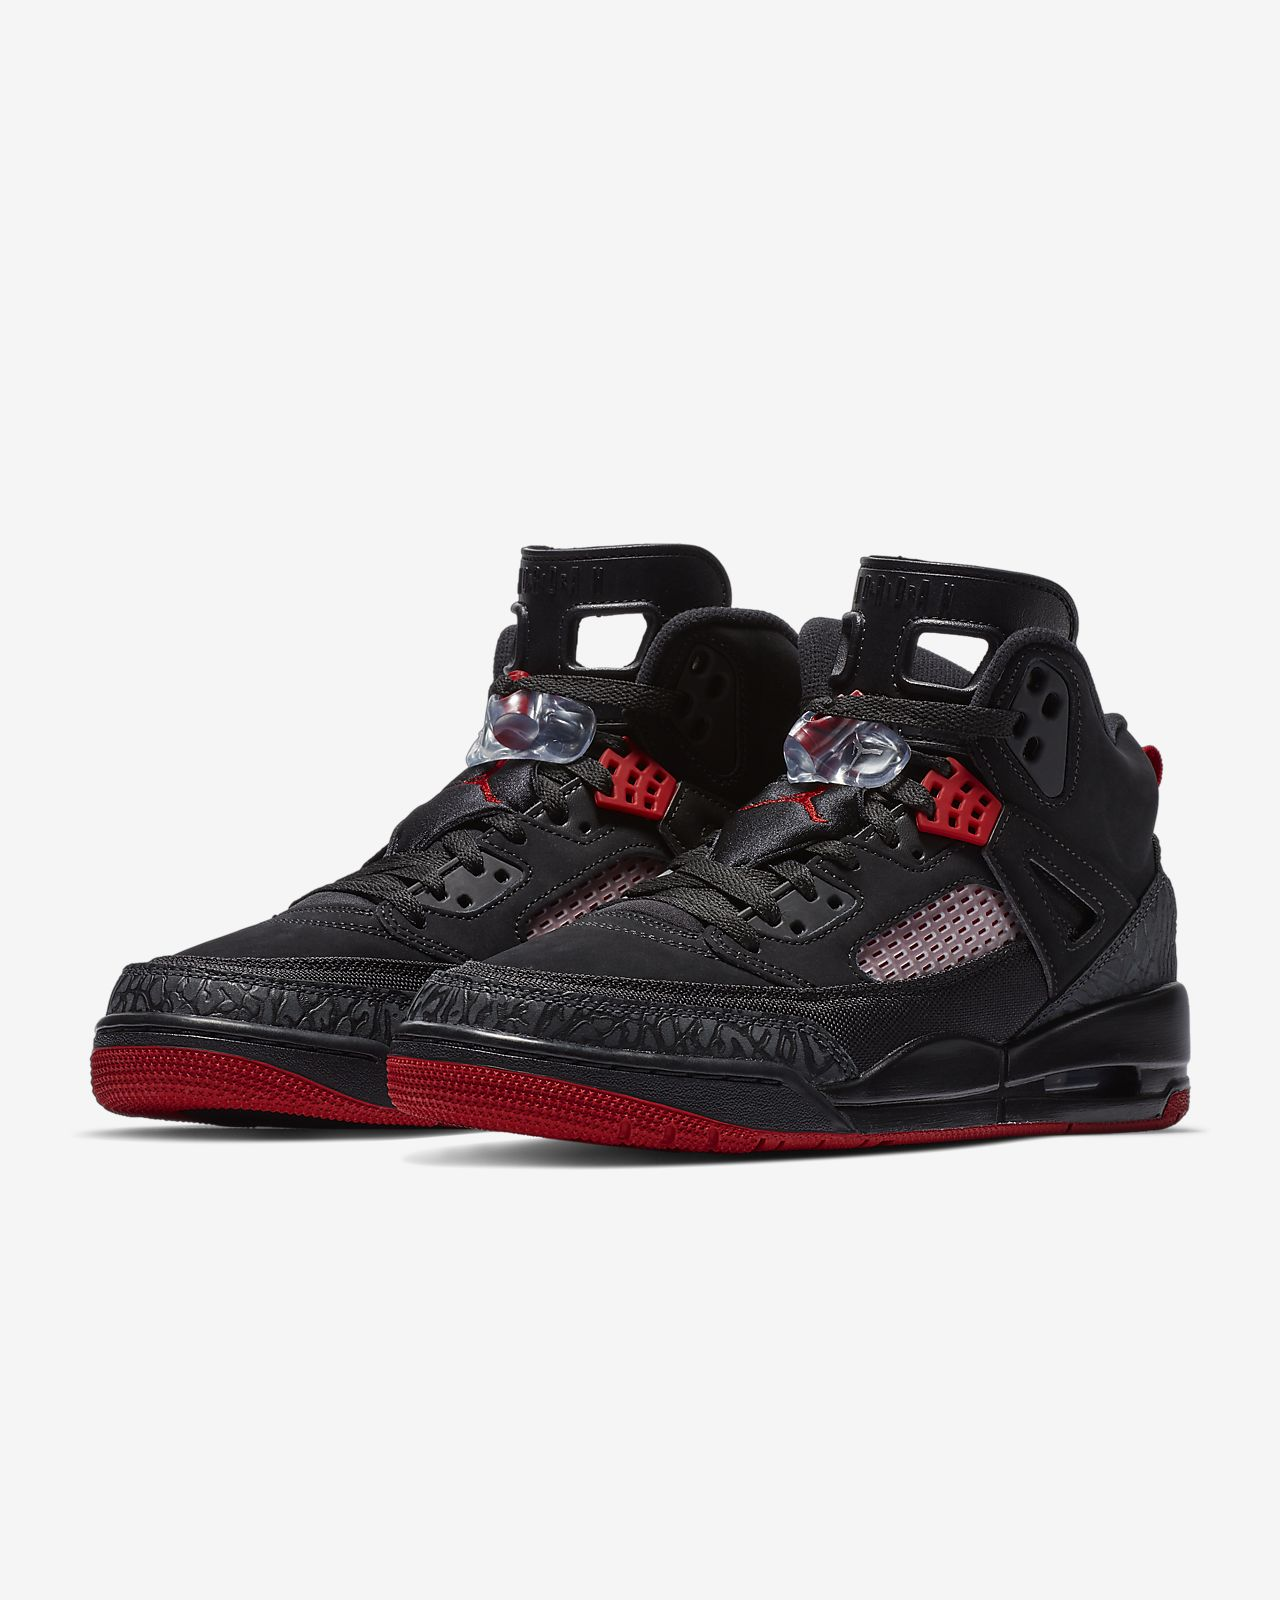 17a6588fed53 Low Resolution Jordan Spizike Men s Shoe Jordan Spizike Men s Shoe